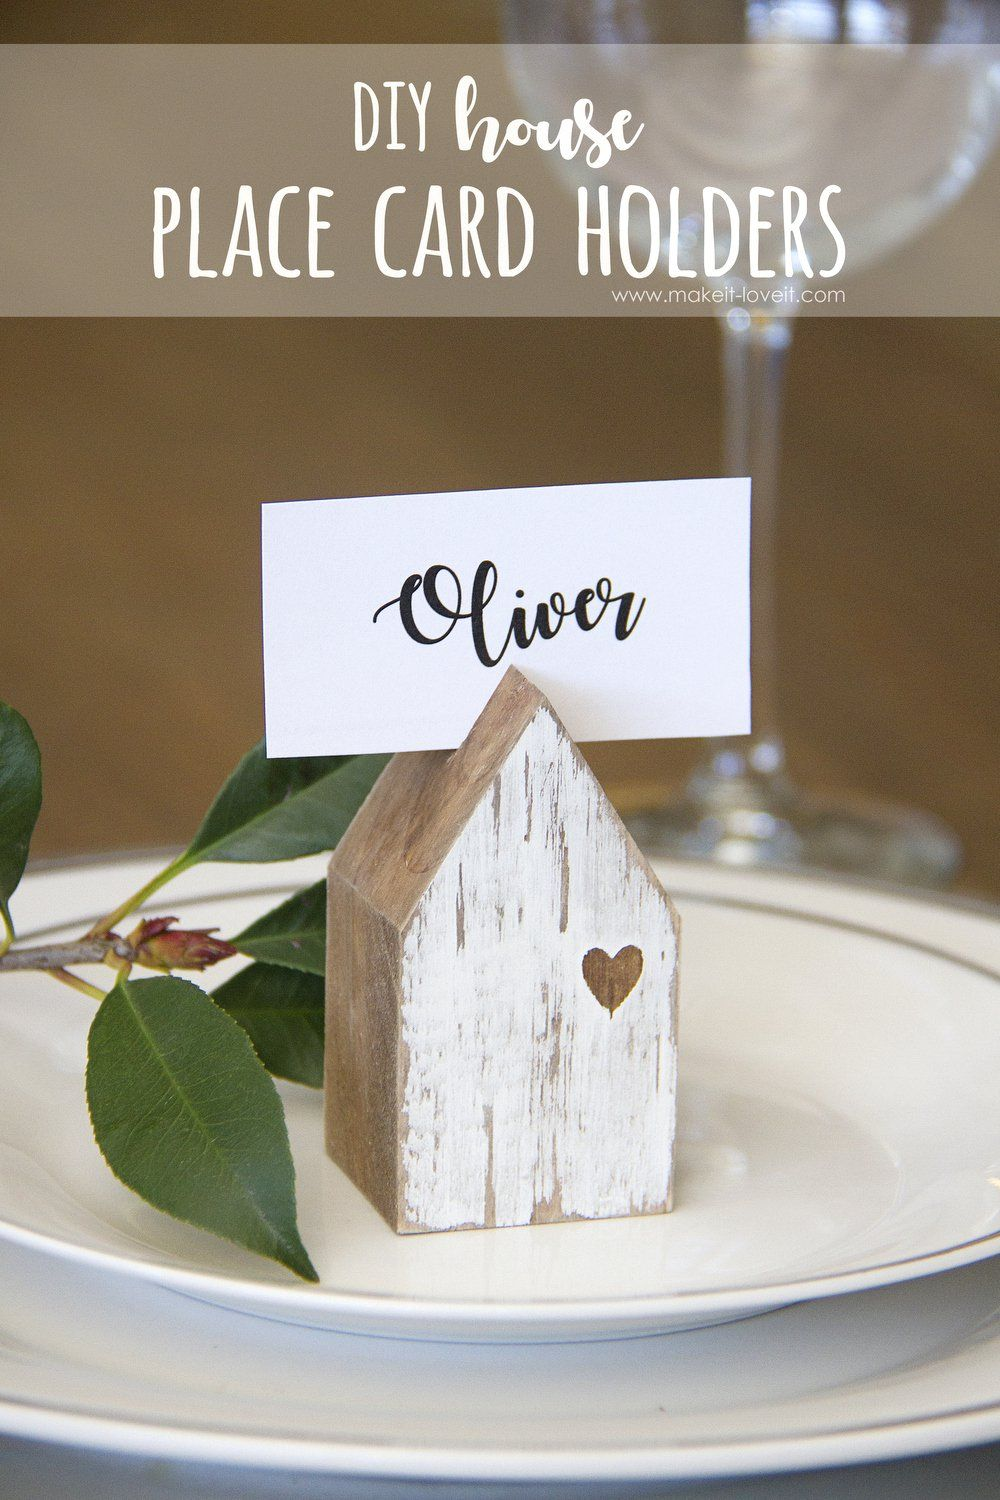 Diy House Place Card Holders Place Card Holders Home Diy Diy Wood Projects